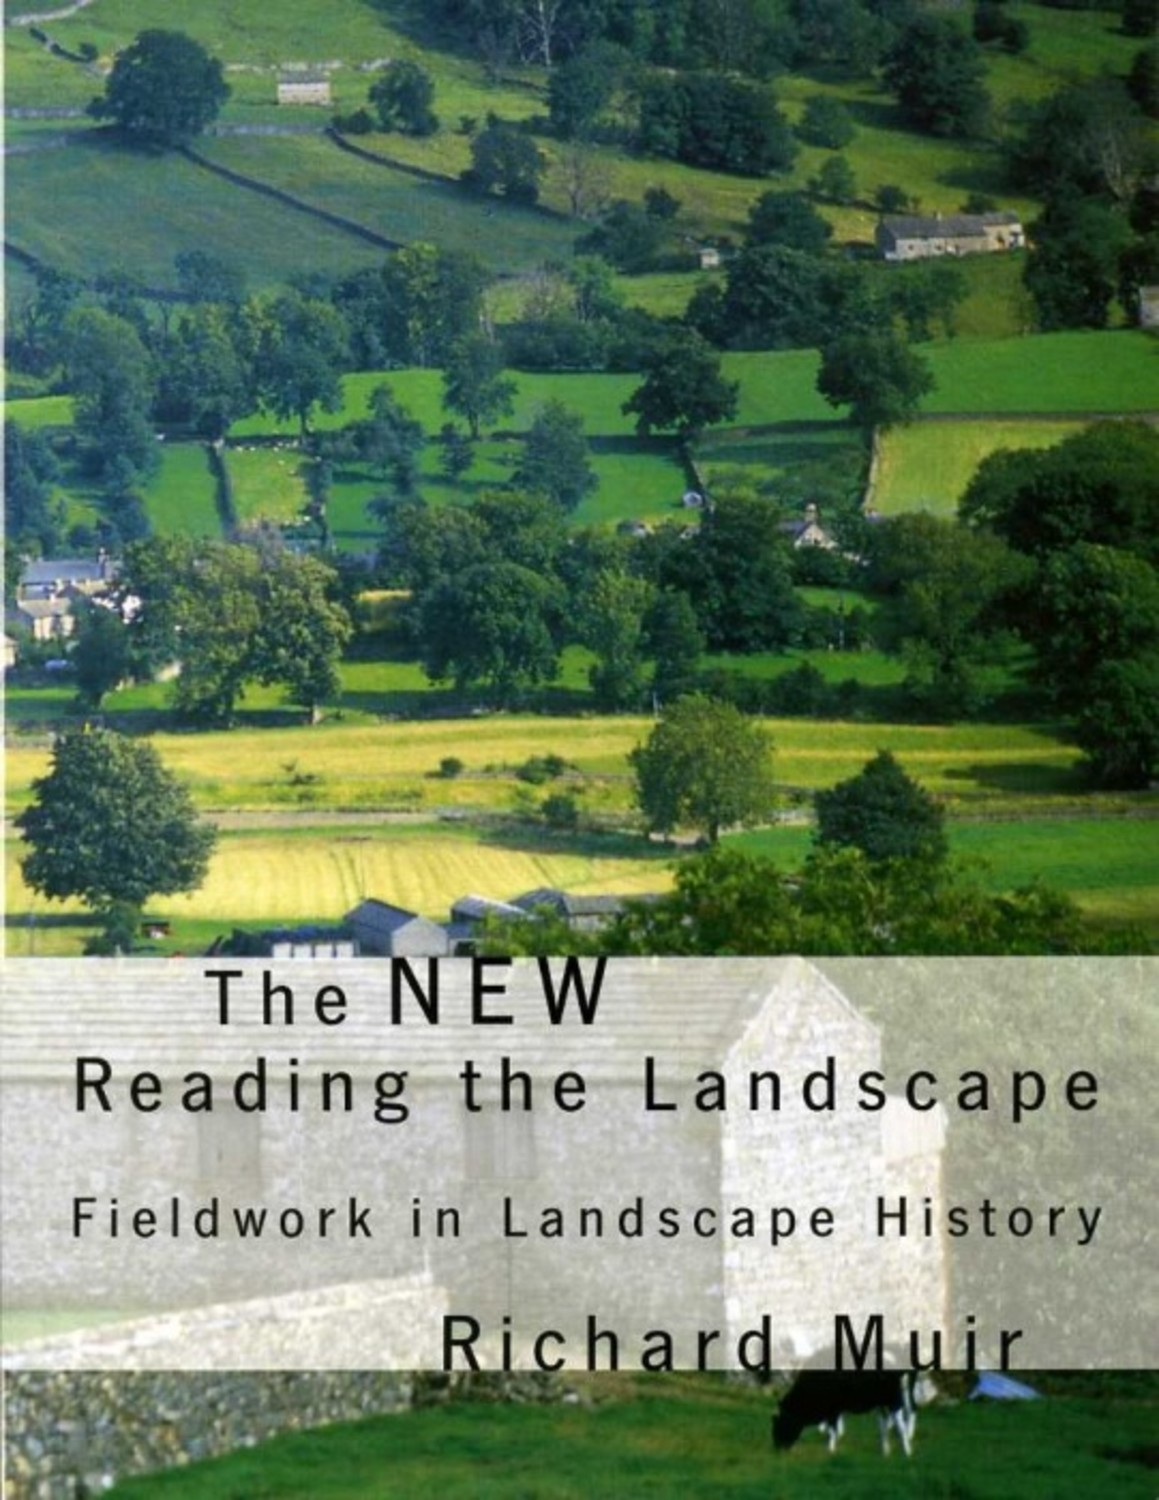 New Reading the Landscape